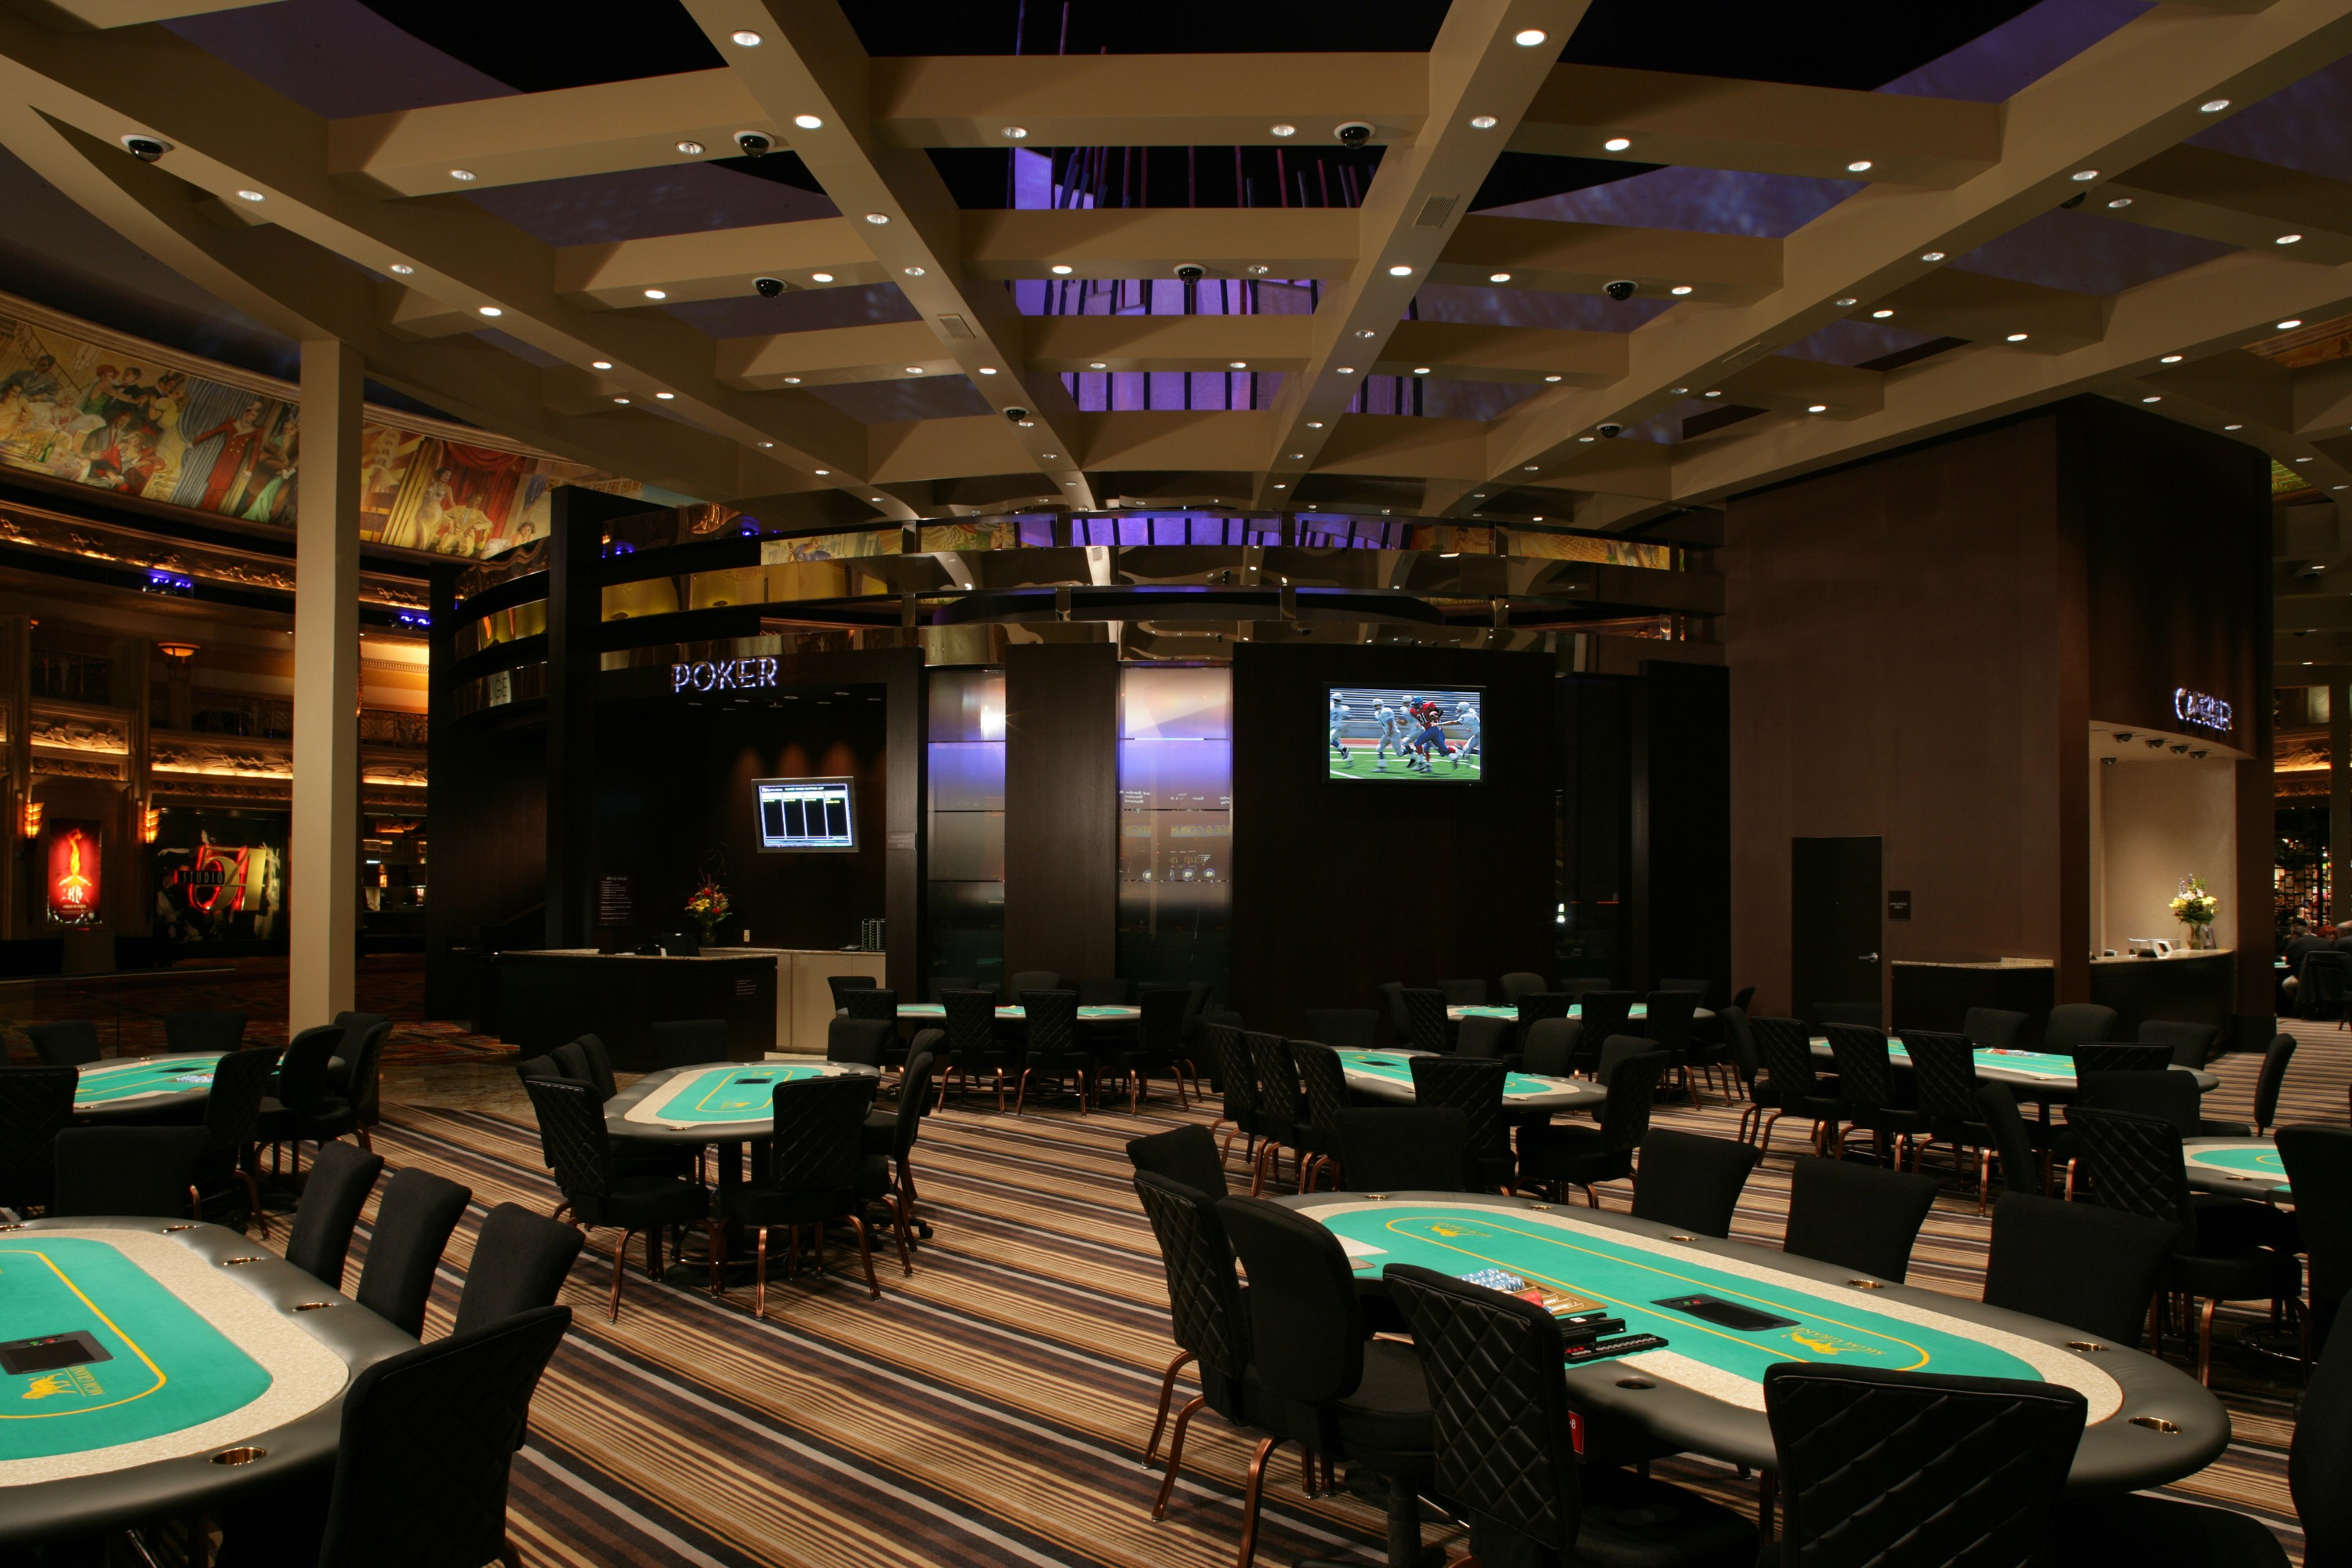 Excalibur casino poker room